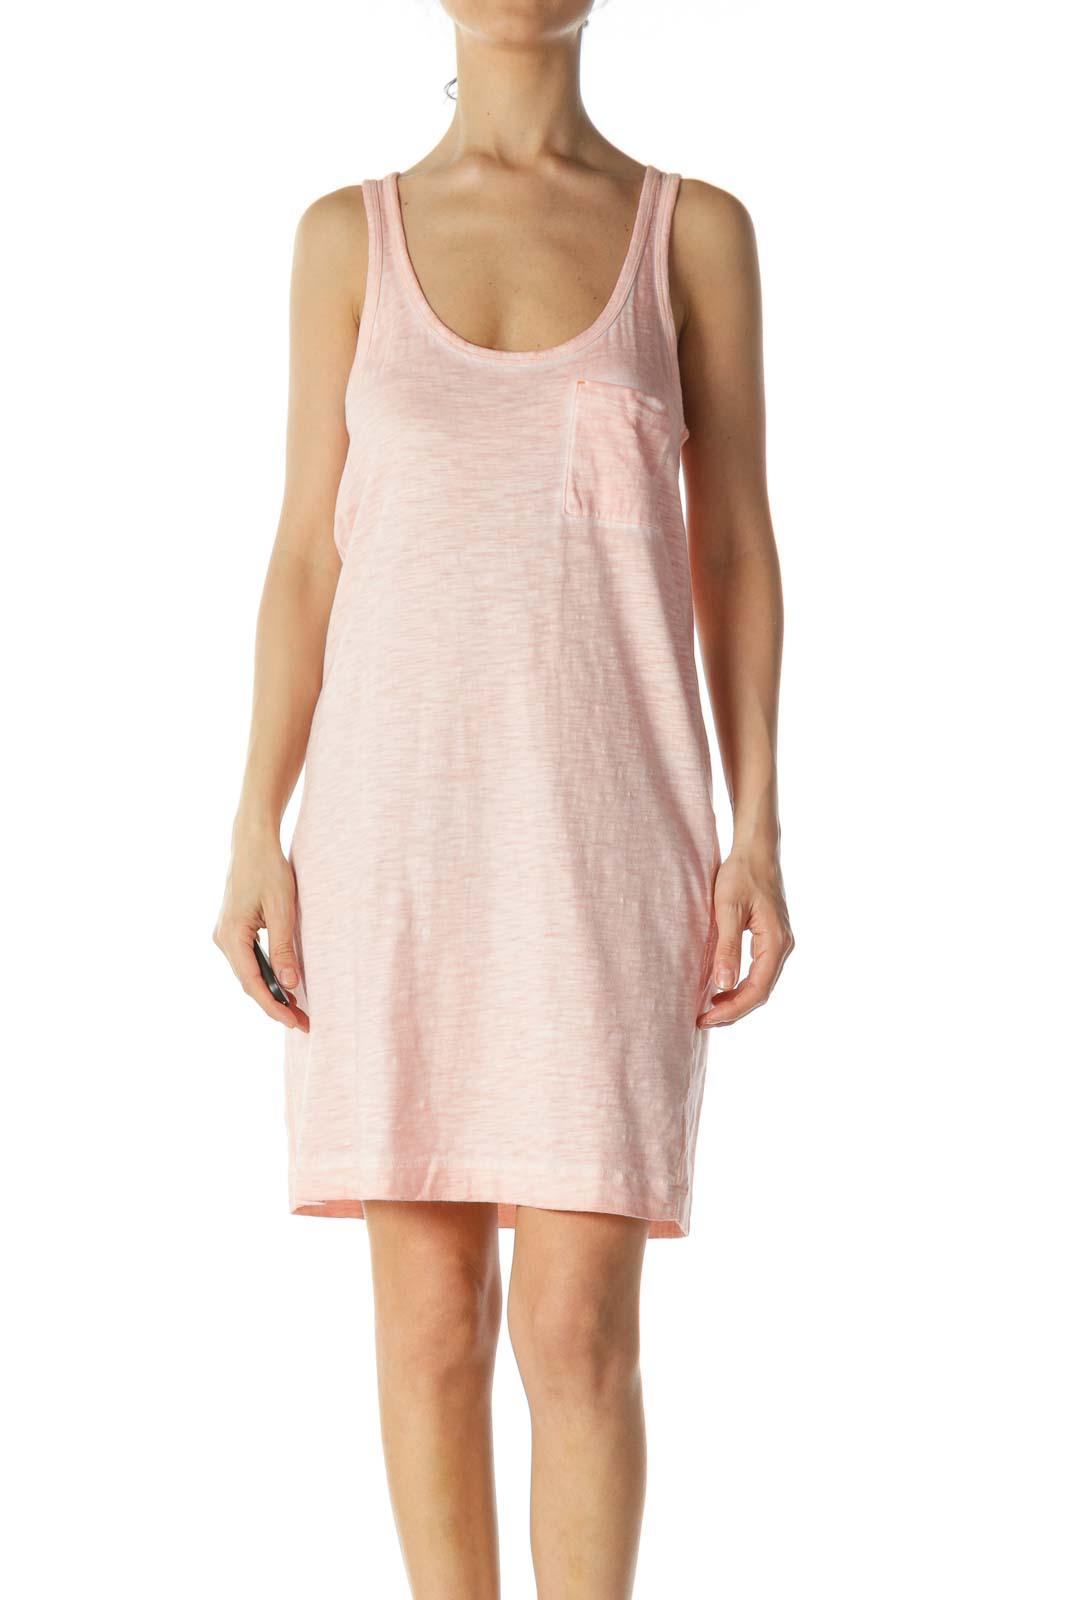 Salmon Pink Pocketed Jersey-Knit Day Dress